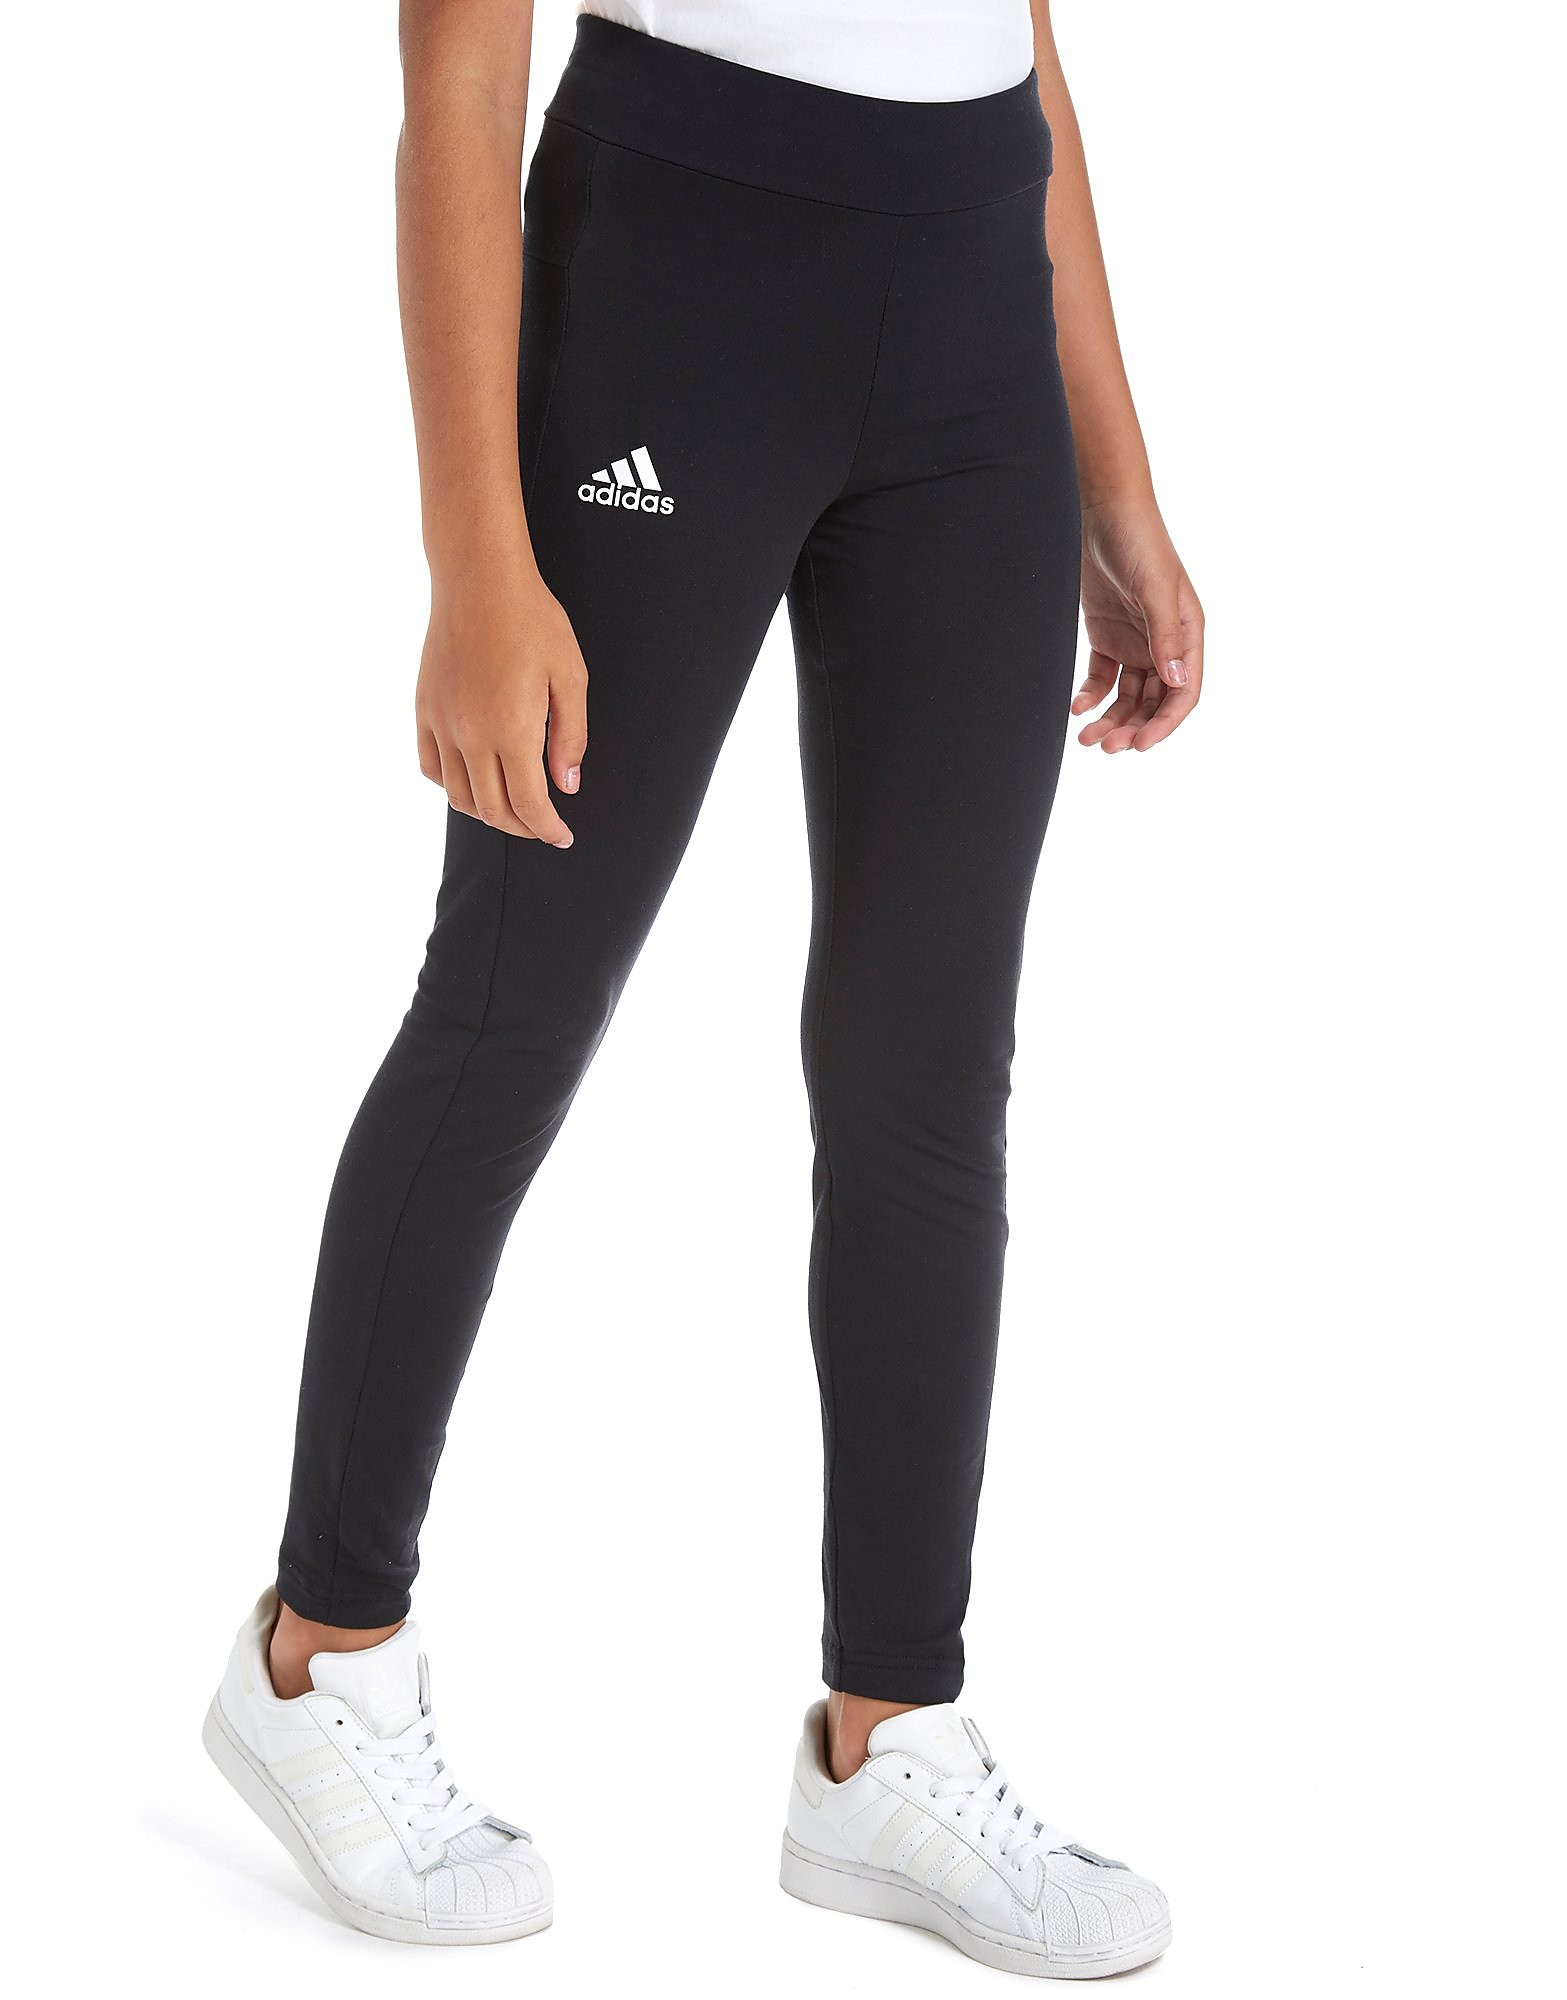 adidas Girls' Linear Tight Junior